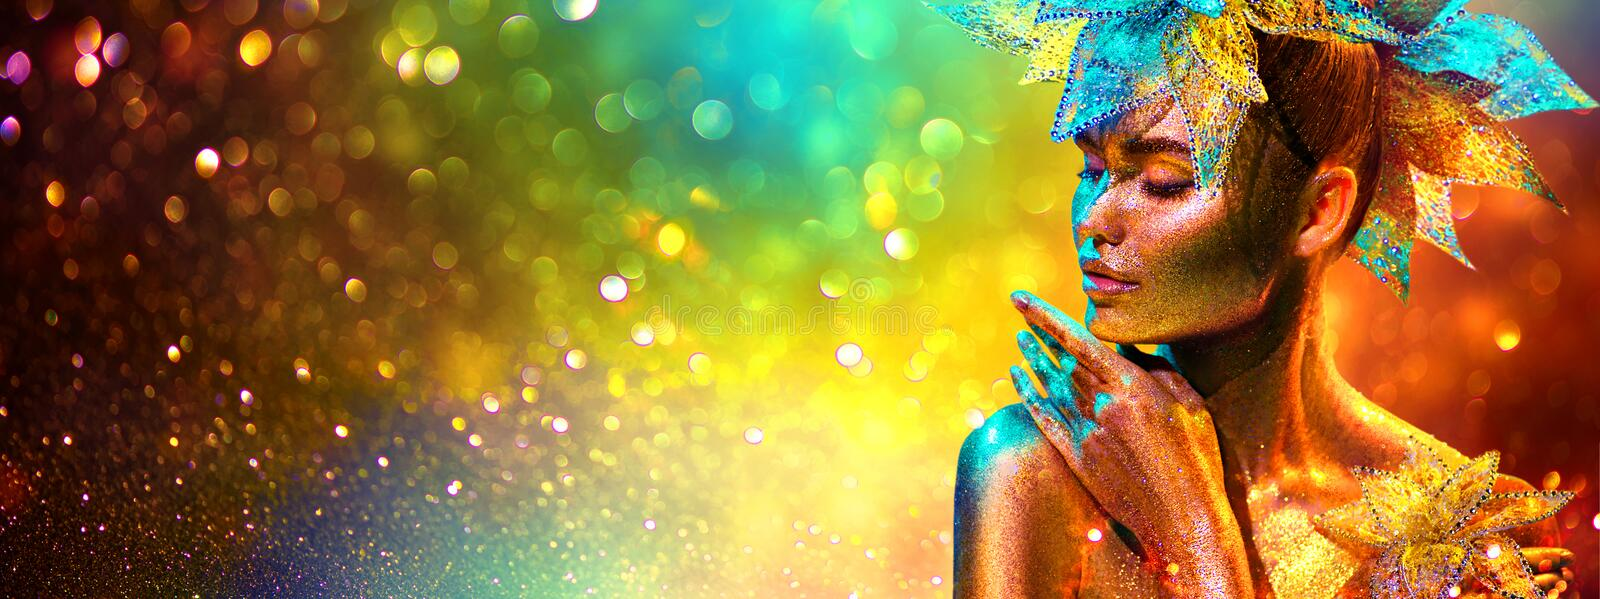 Golden Fashion model woman with bright golden sparkles on skin posing, fantasy flower, portrait of beautiful girl glowing makeup. Art design gold sequins make royalty free stock image